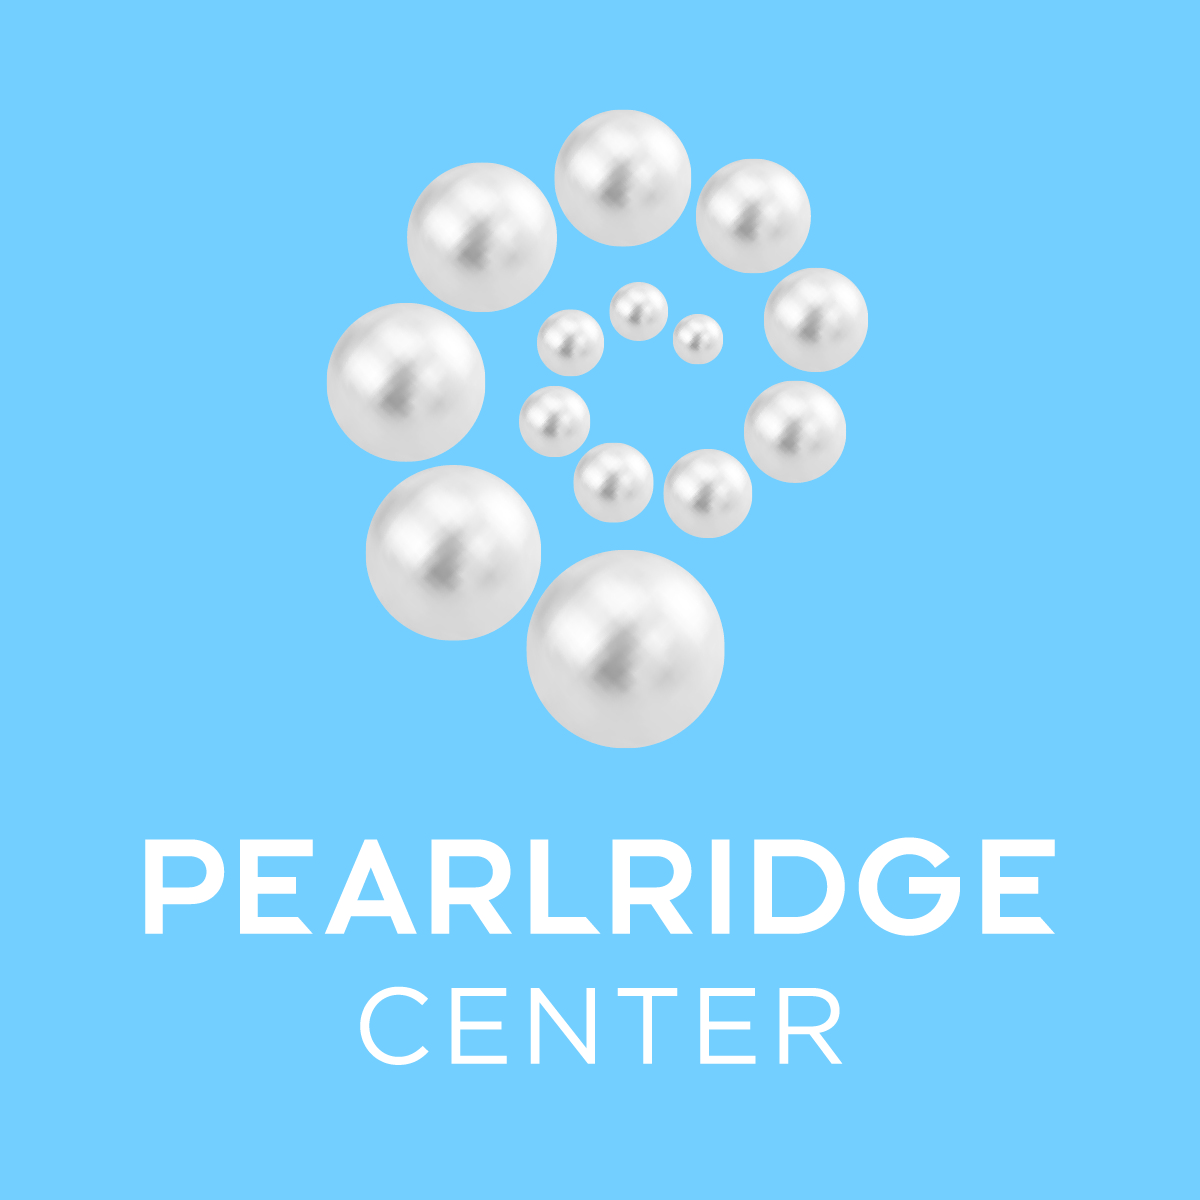 Pearlridge Center in Aiea | Largest Indoor Shopping Mall in Hawaii